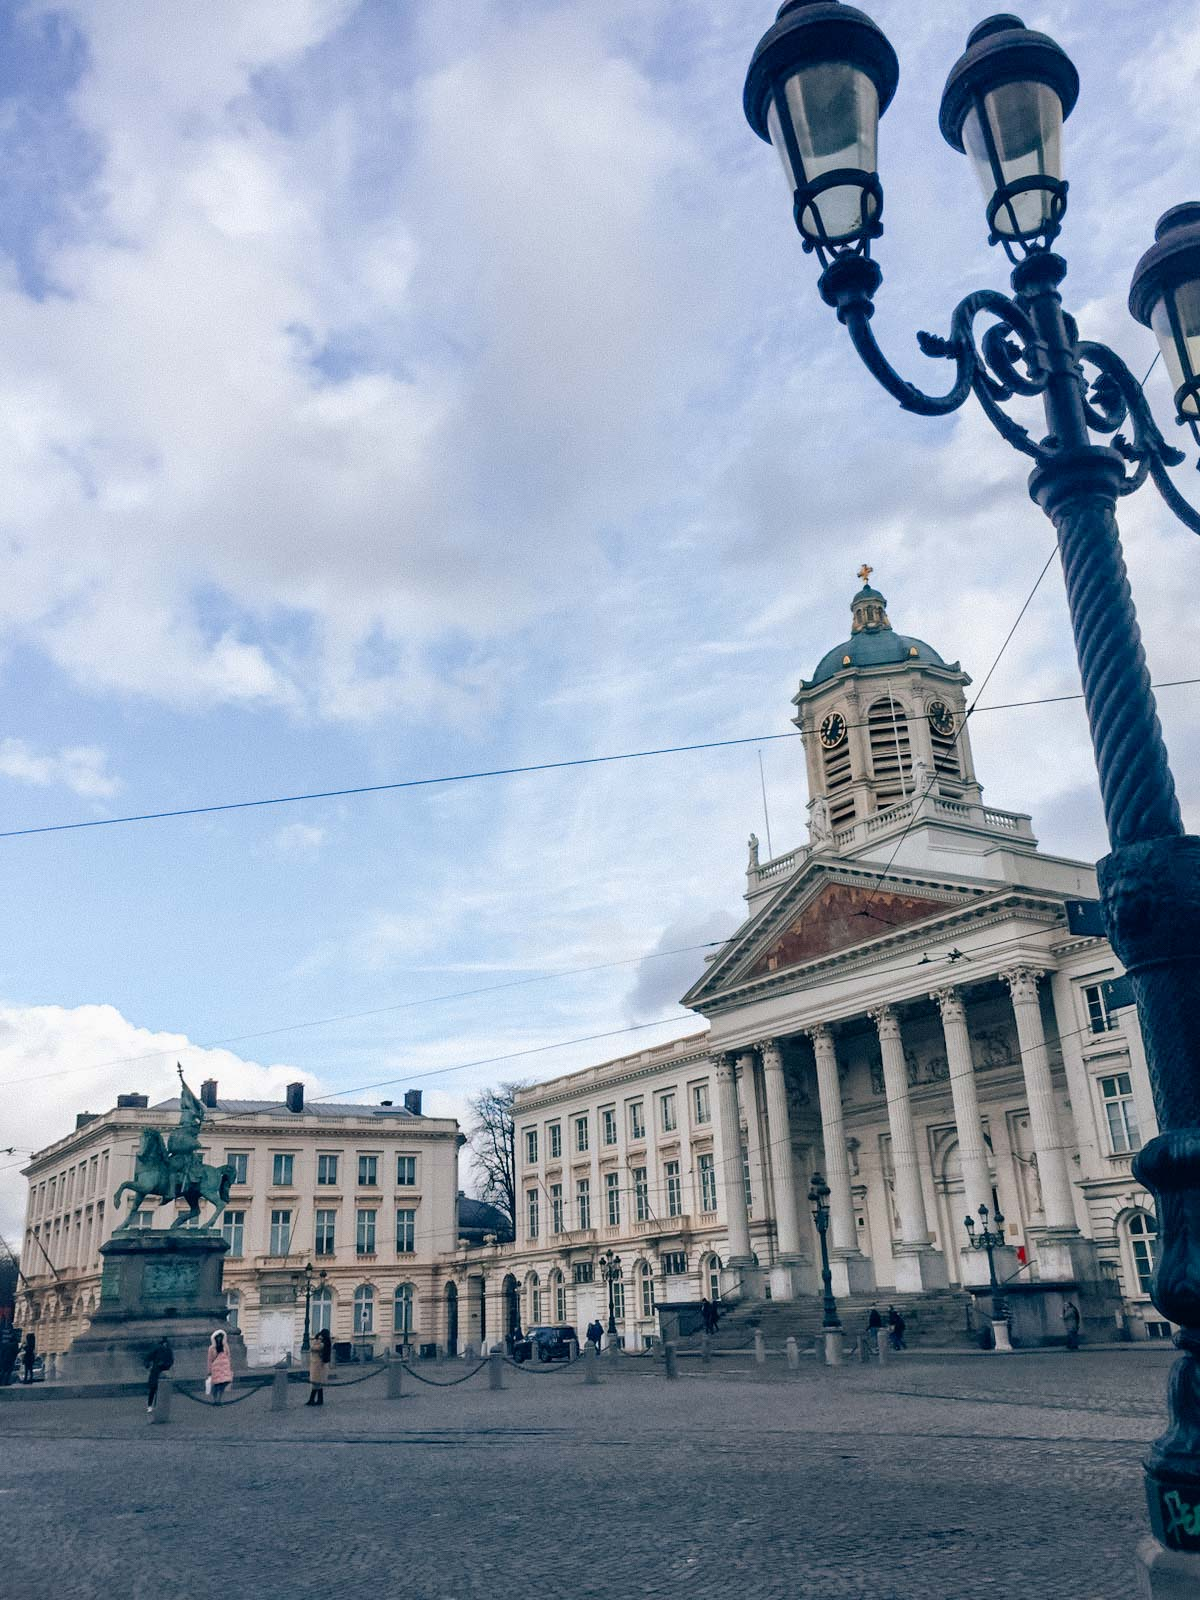 View on the Place Royale of Brussels from the side